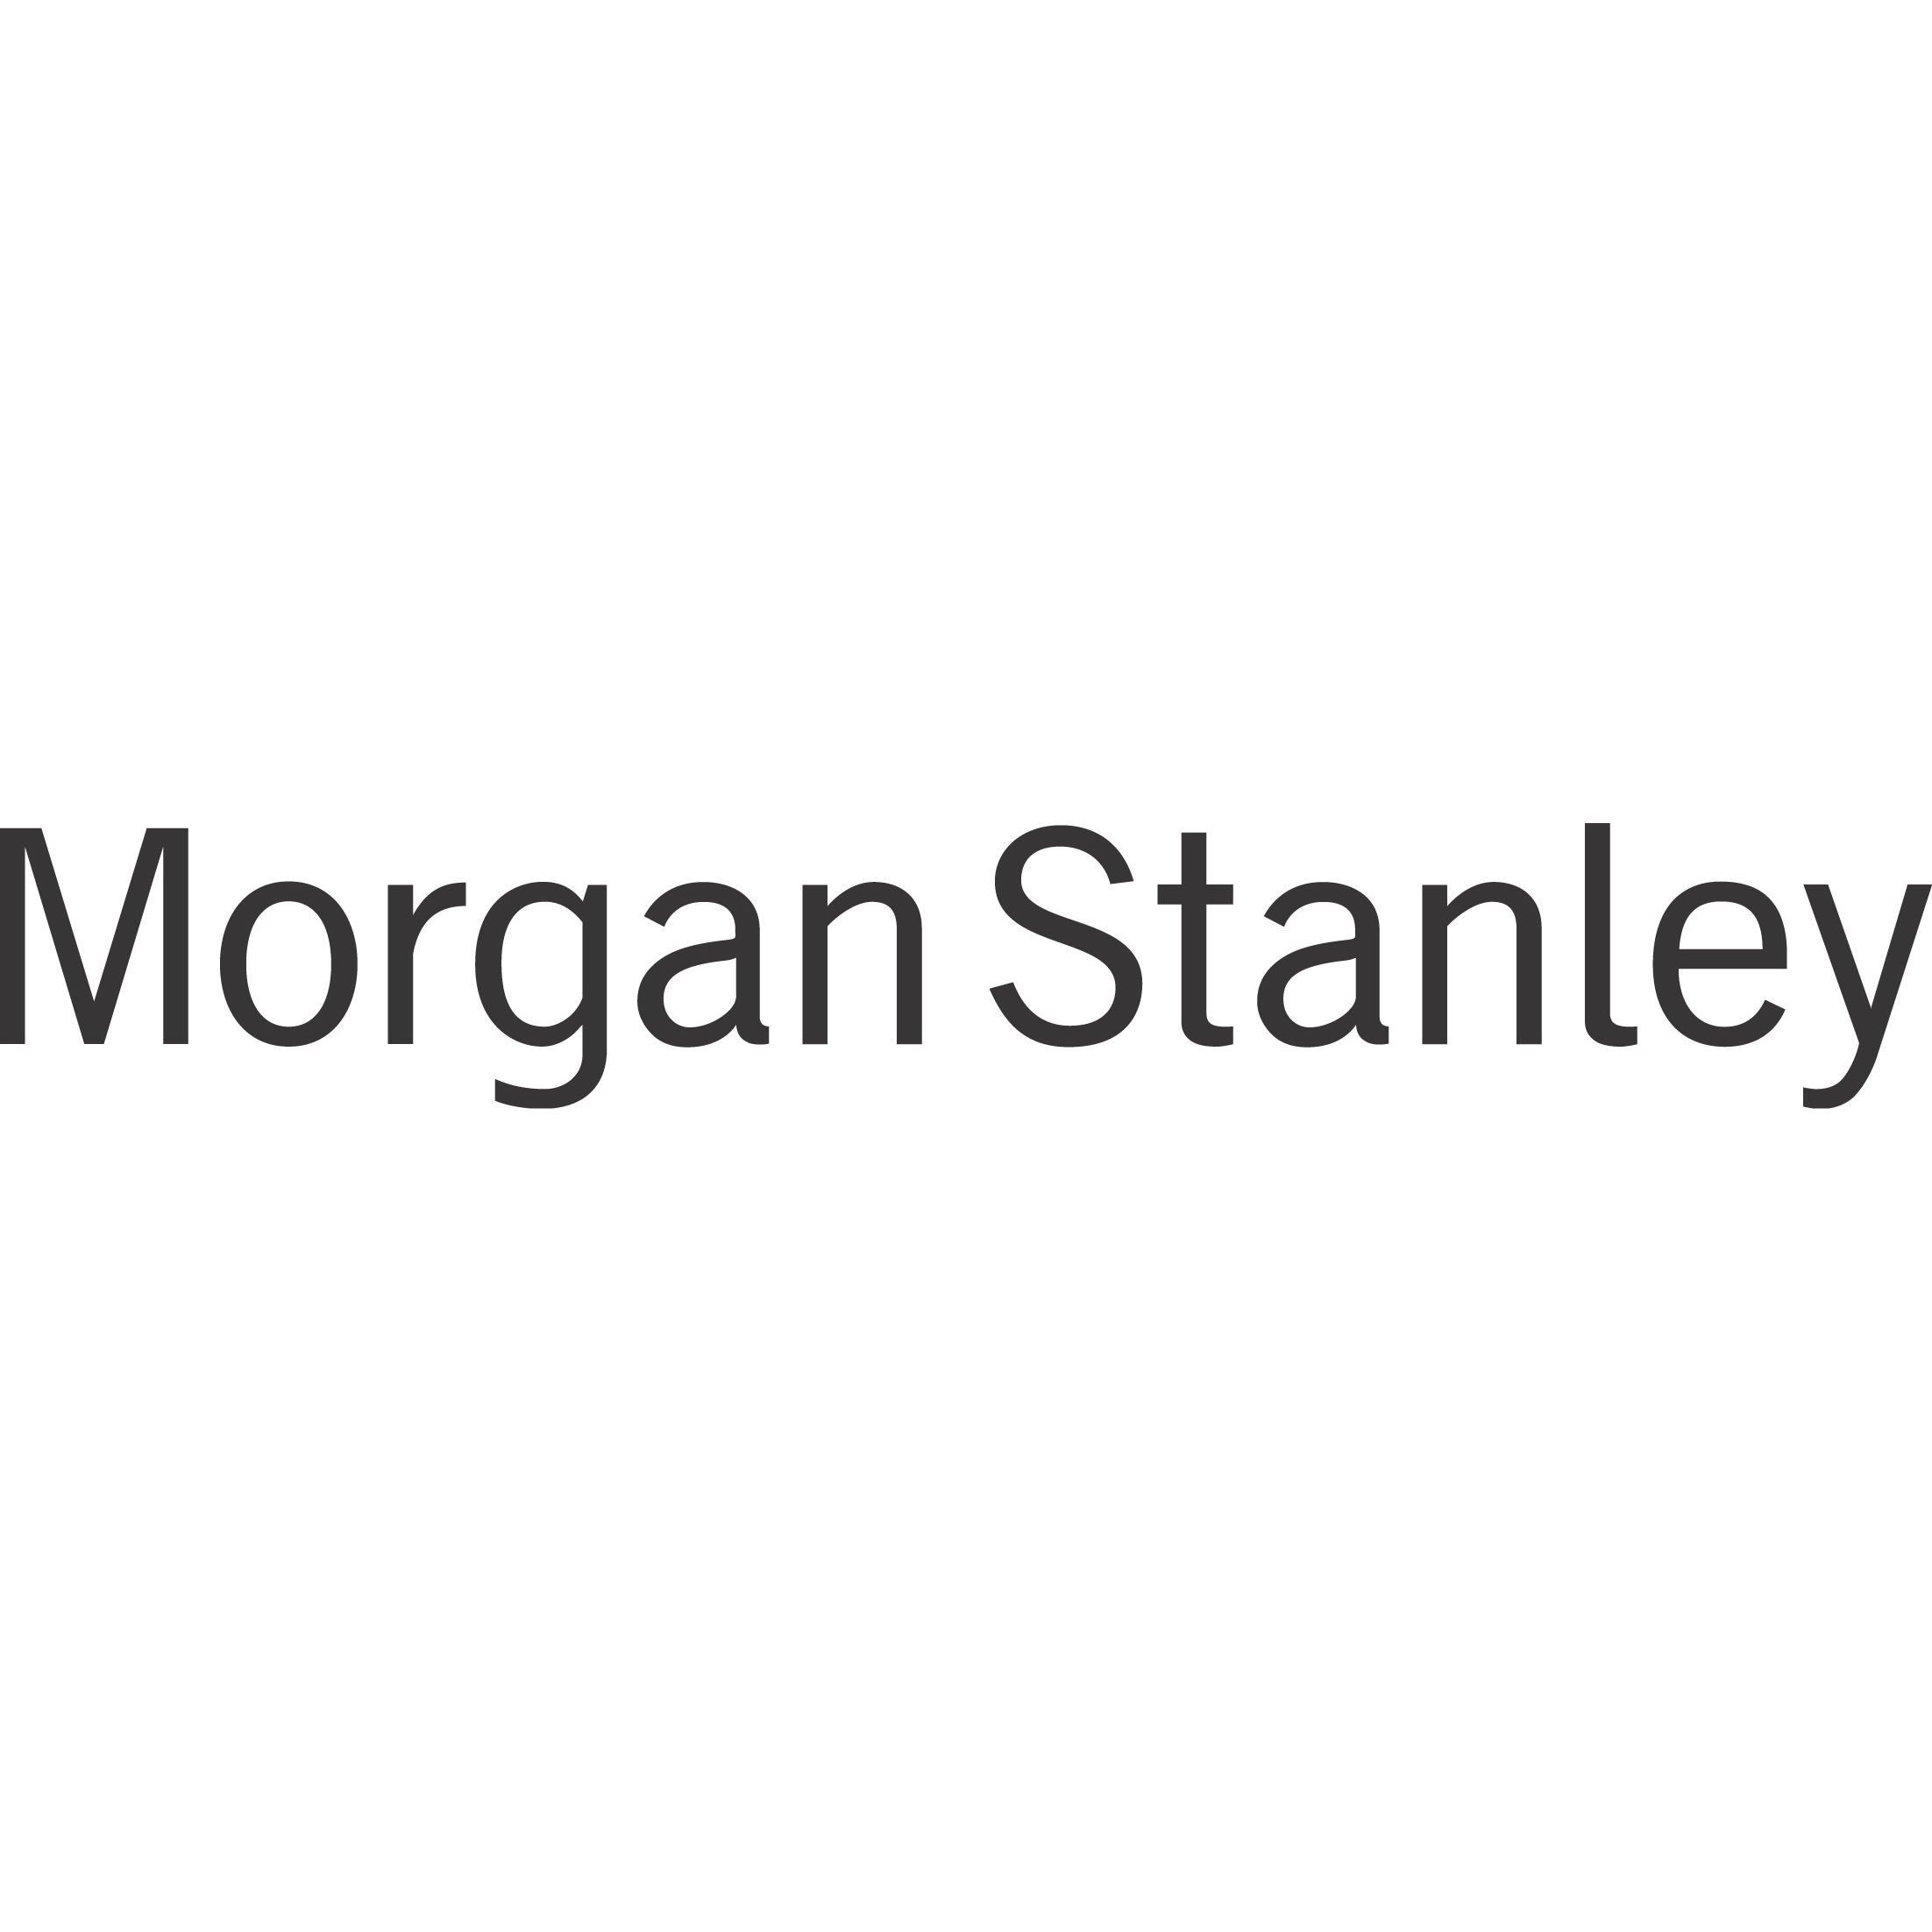 Patrick O Rindfleisch - Morgan Stanley | Financial Advisor in Madison,Wisconsin